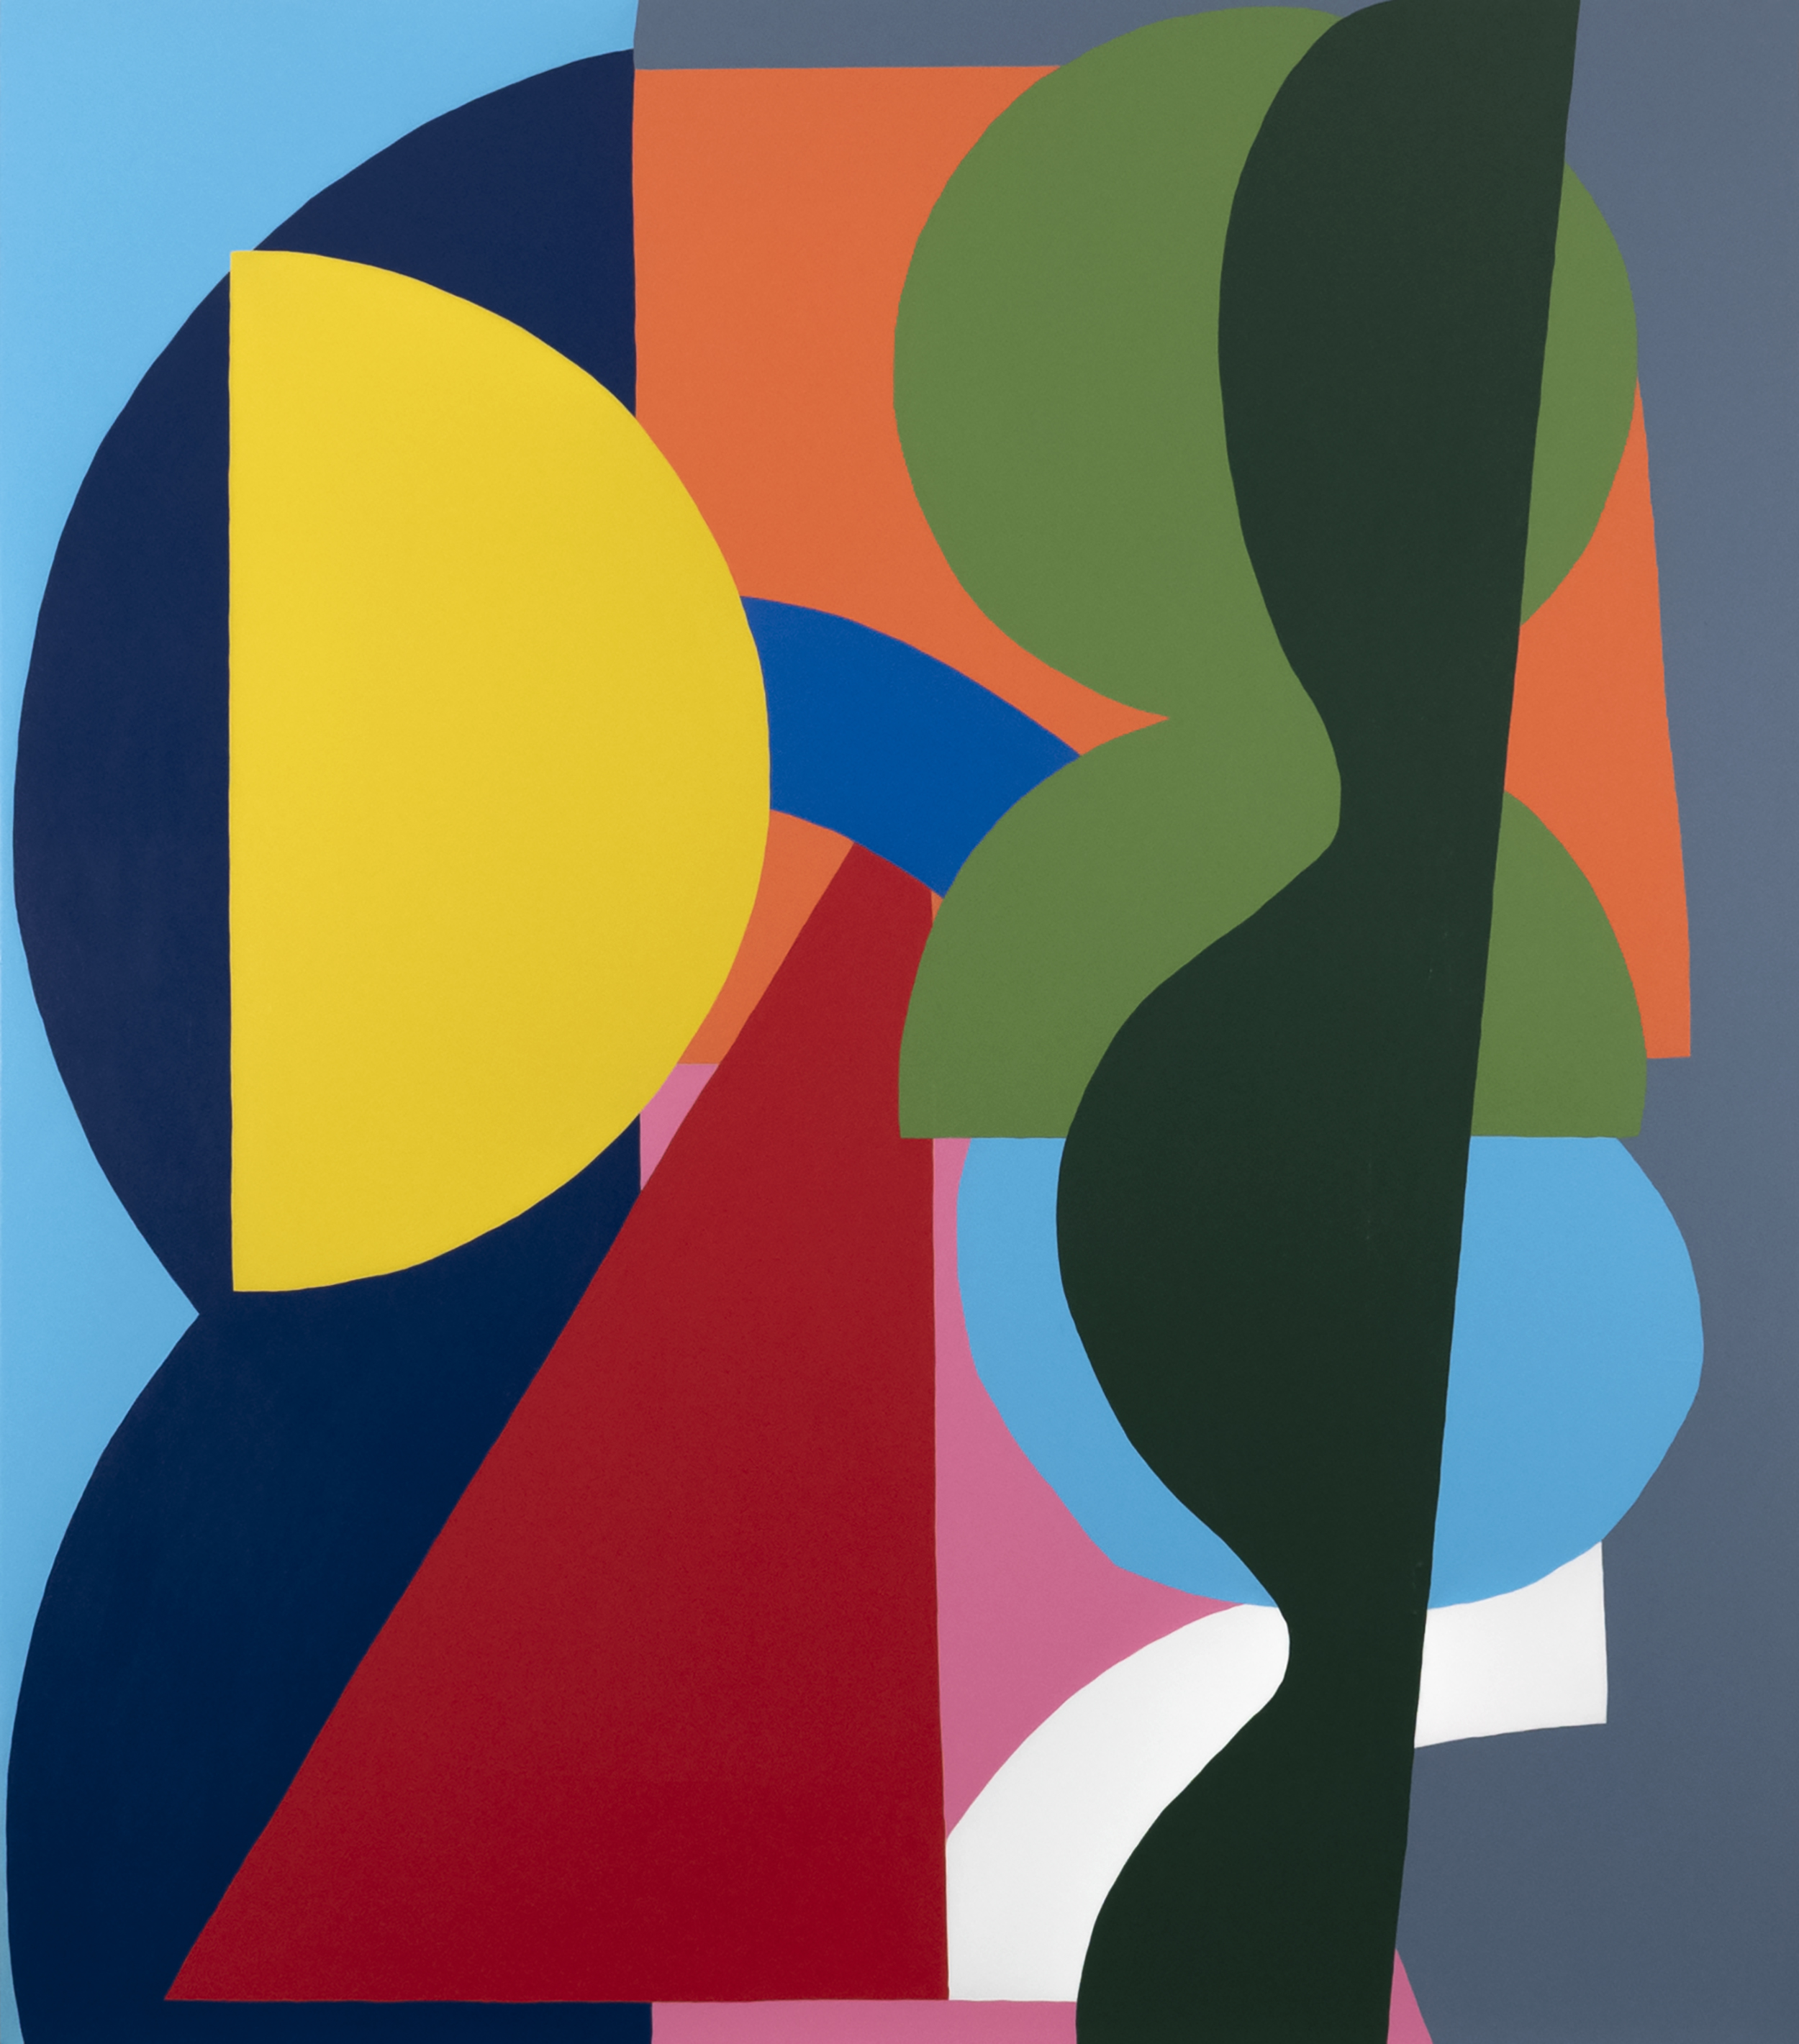 Angle , 2018  Acrylic on canvas  96 x 84 inches